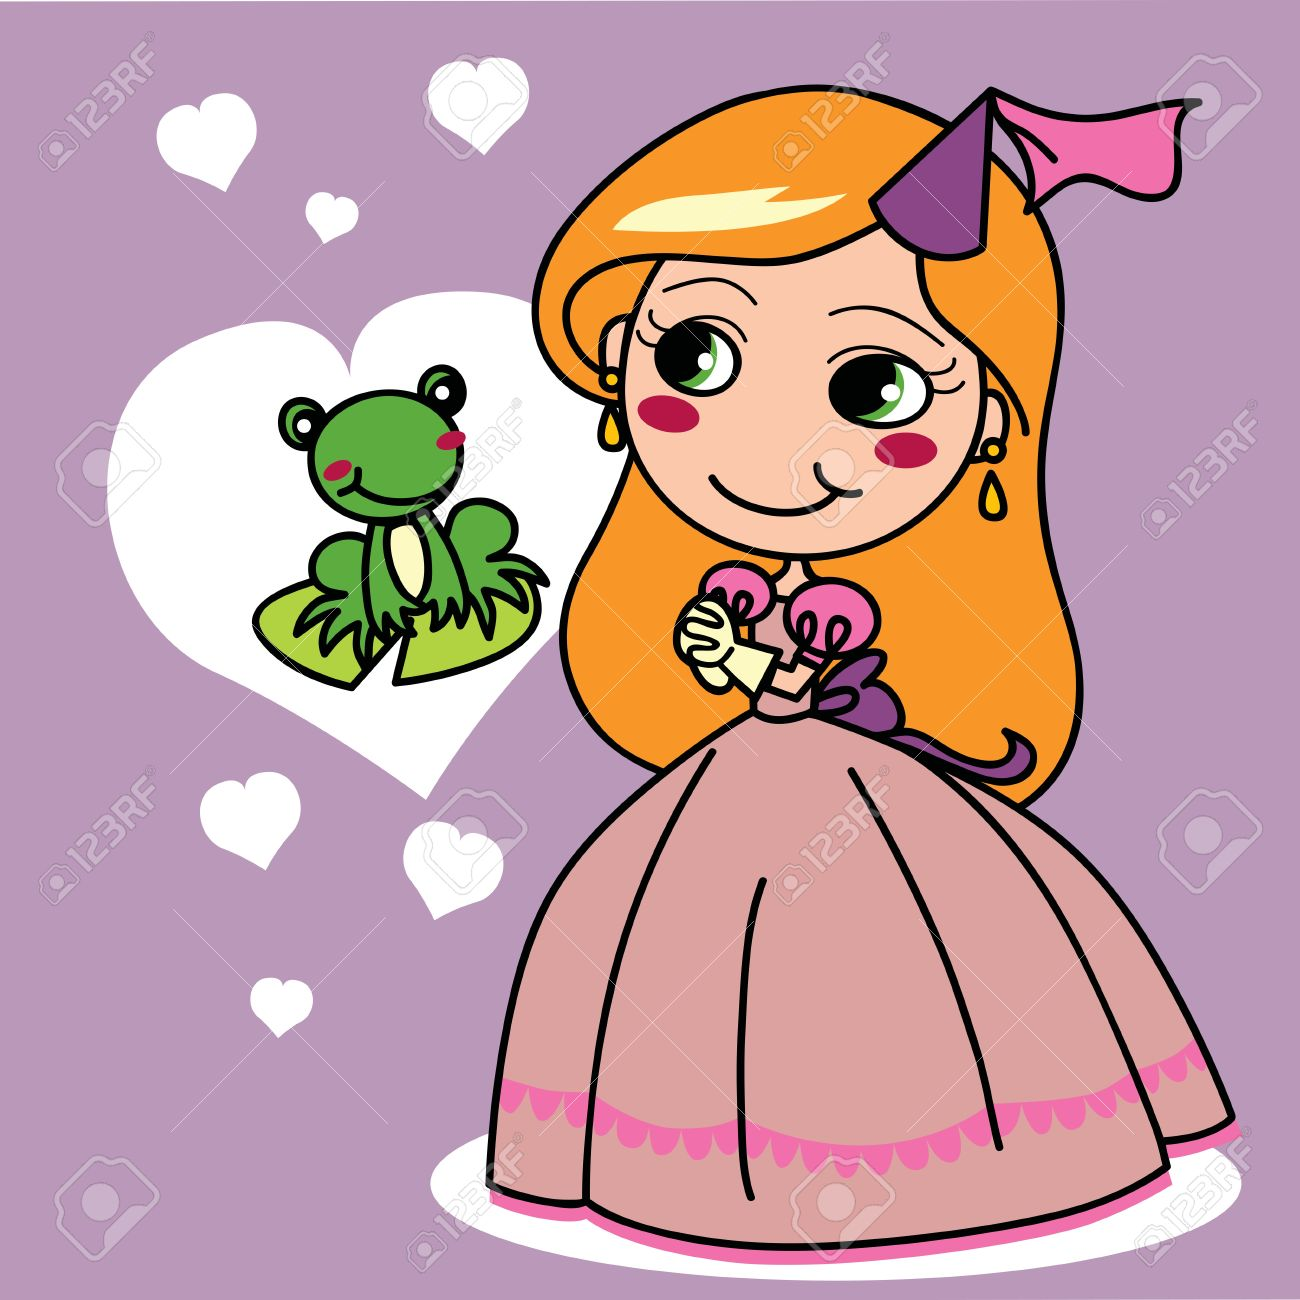 1300x1300 Clipart Girl Kiss A Prince Frog